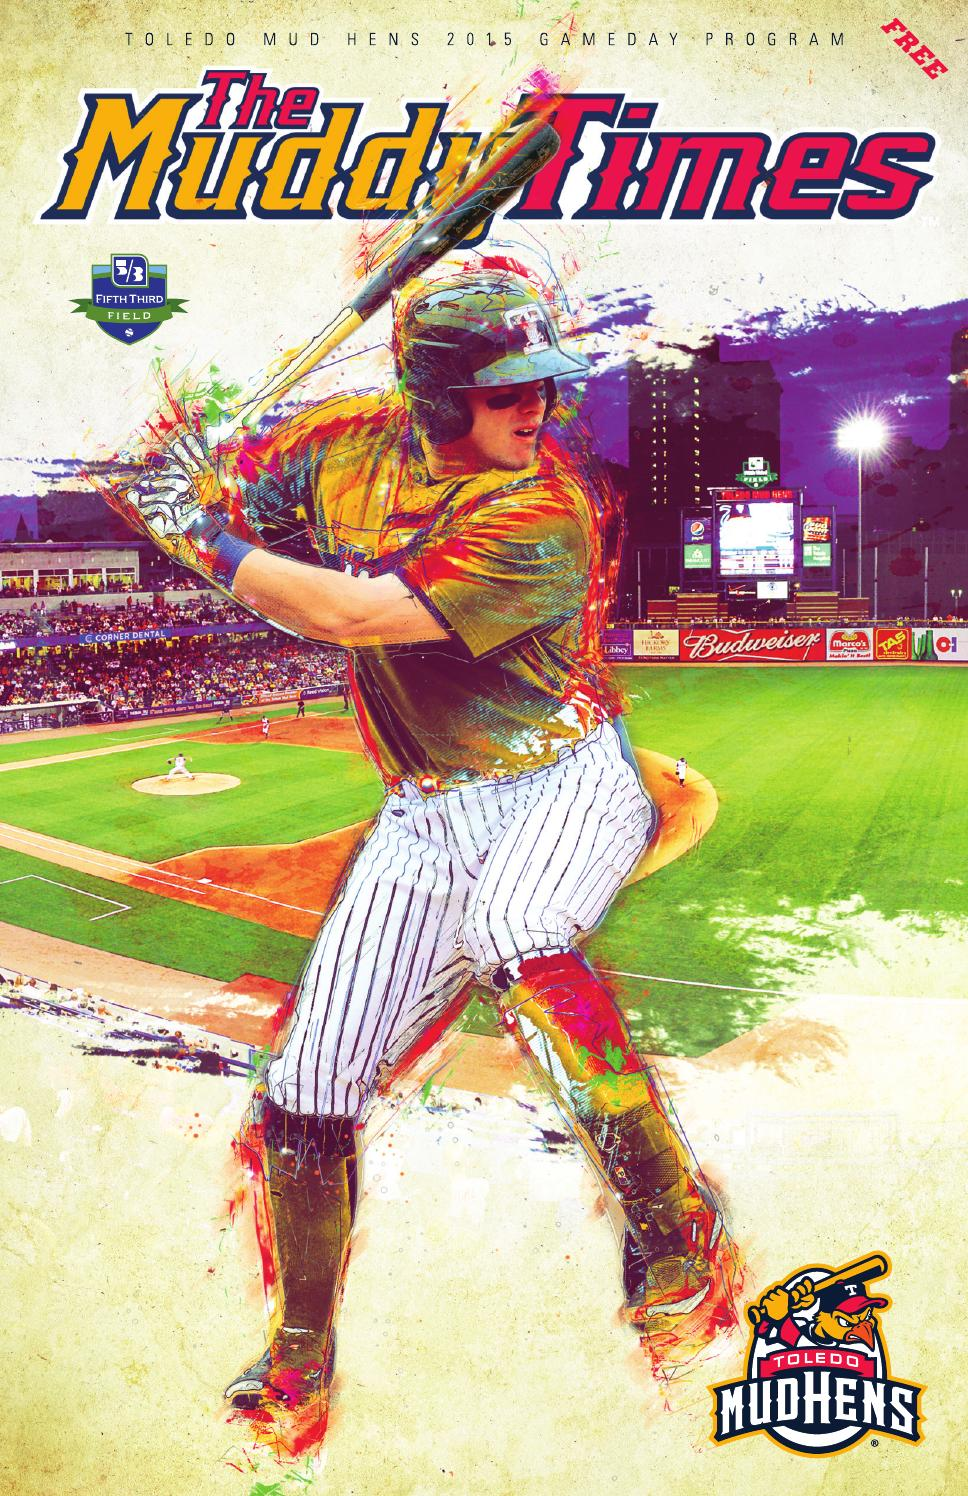 Muddy Times - 2015 by Toledo Mud Hens